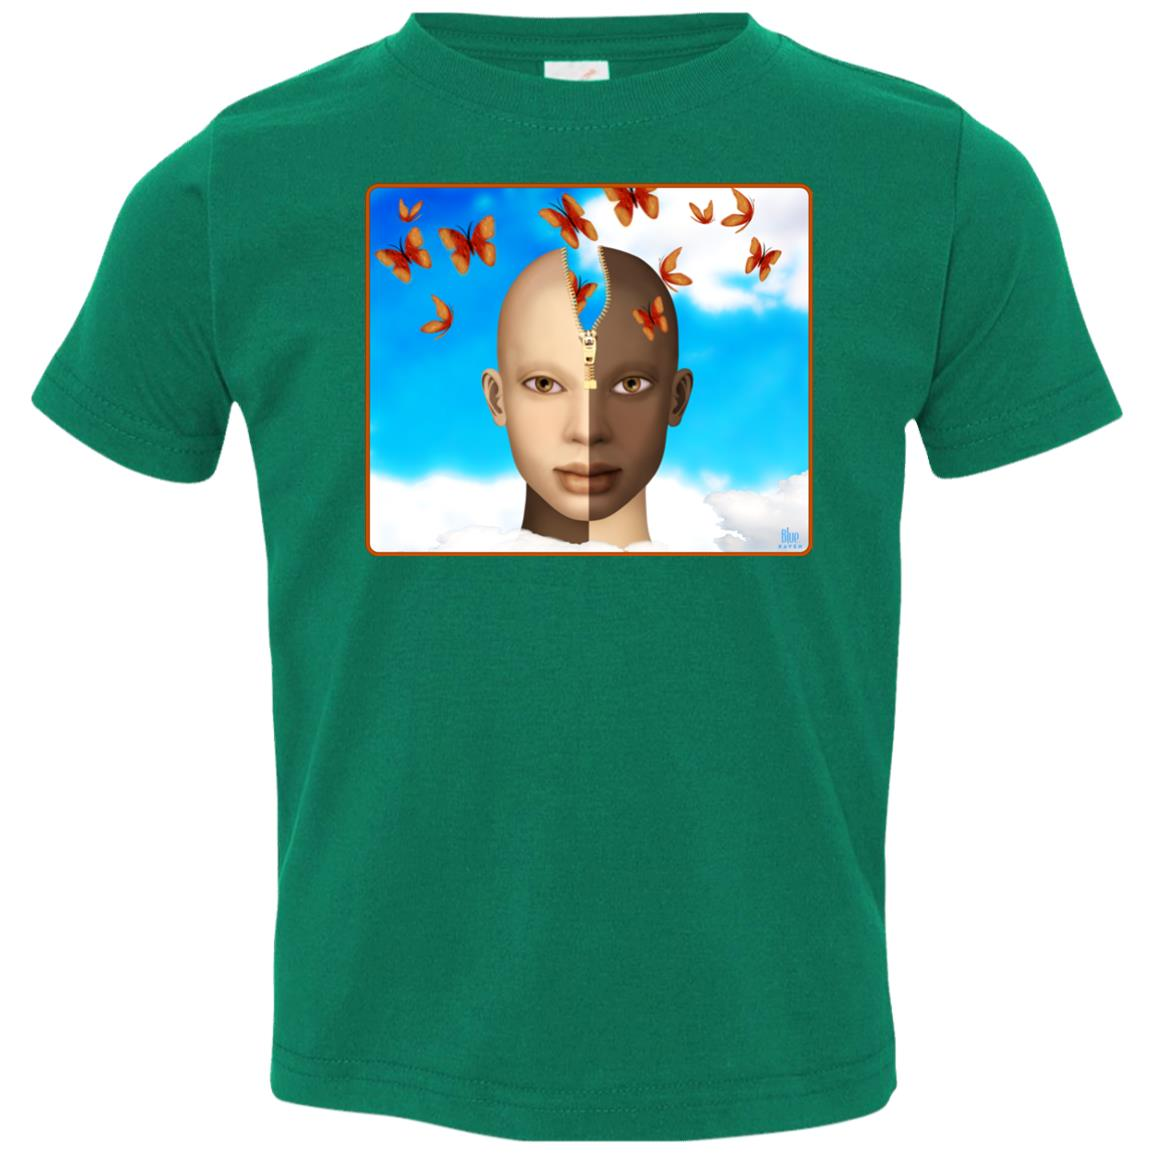 color of our thoughts - Premium Toddler T-Shirt